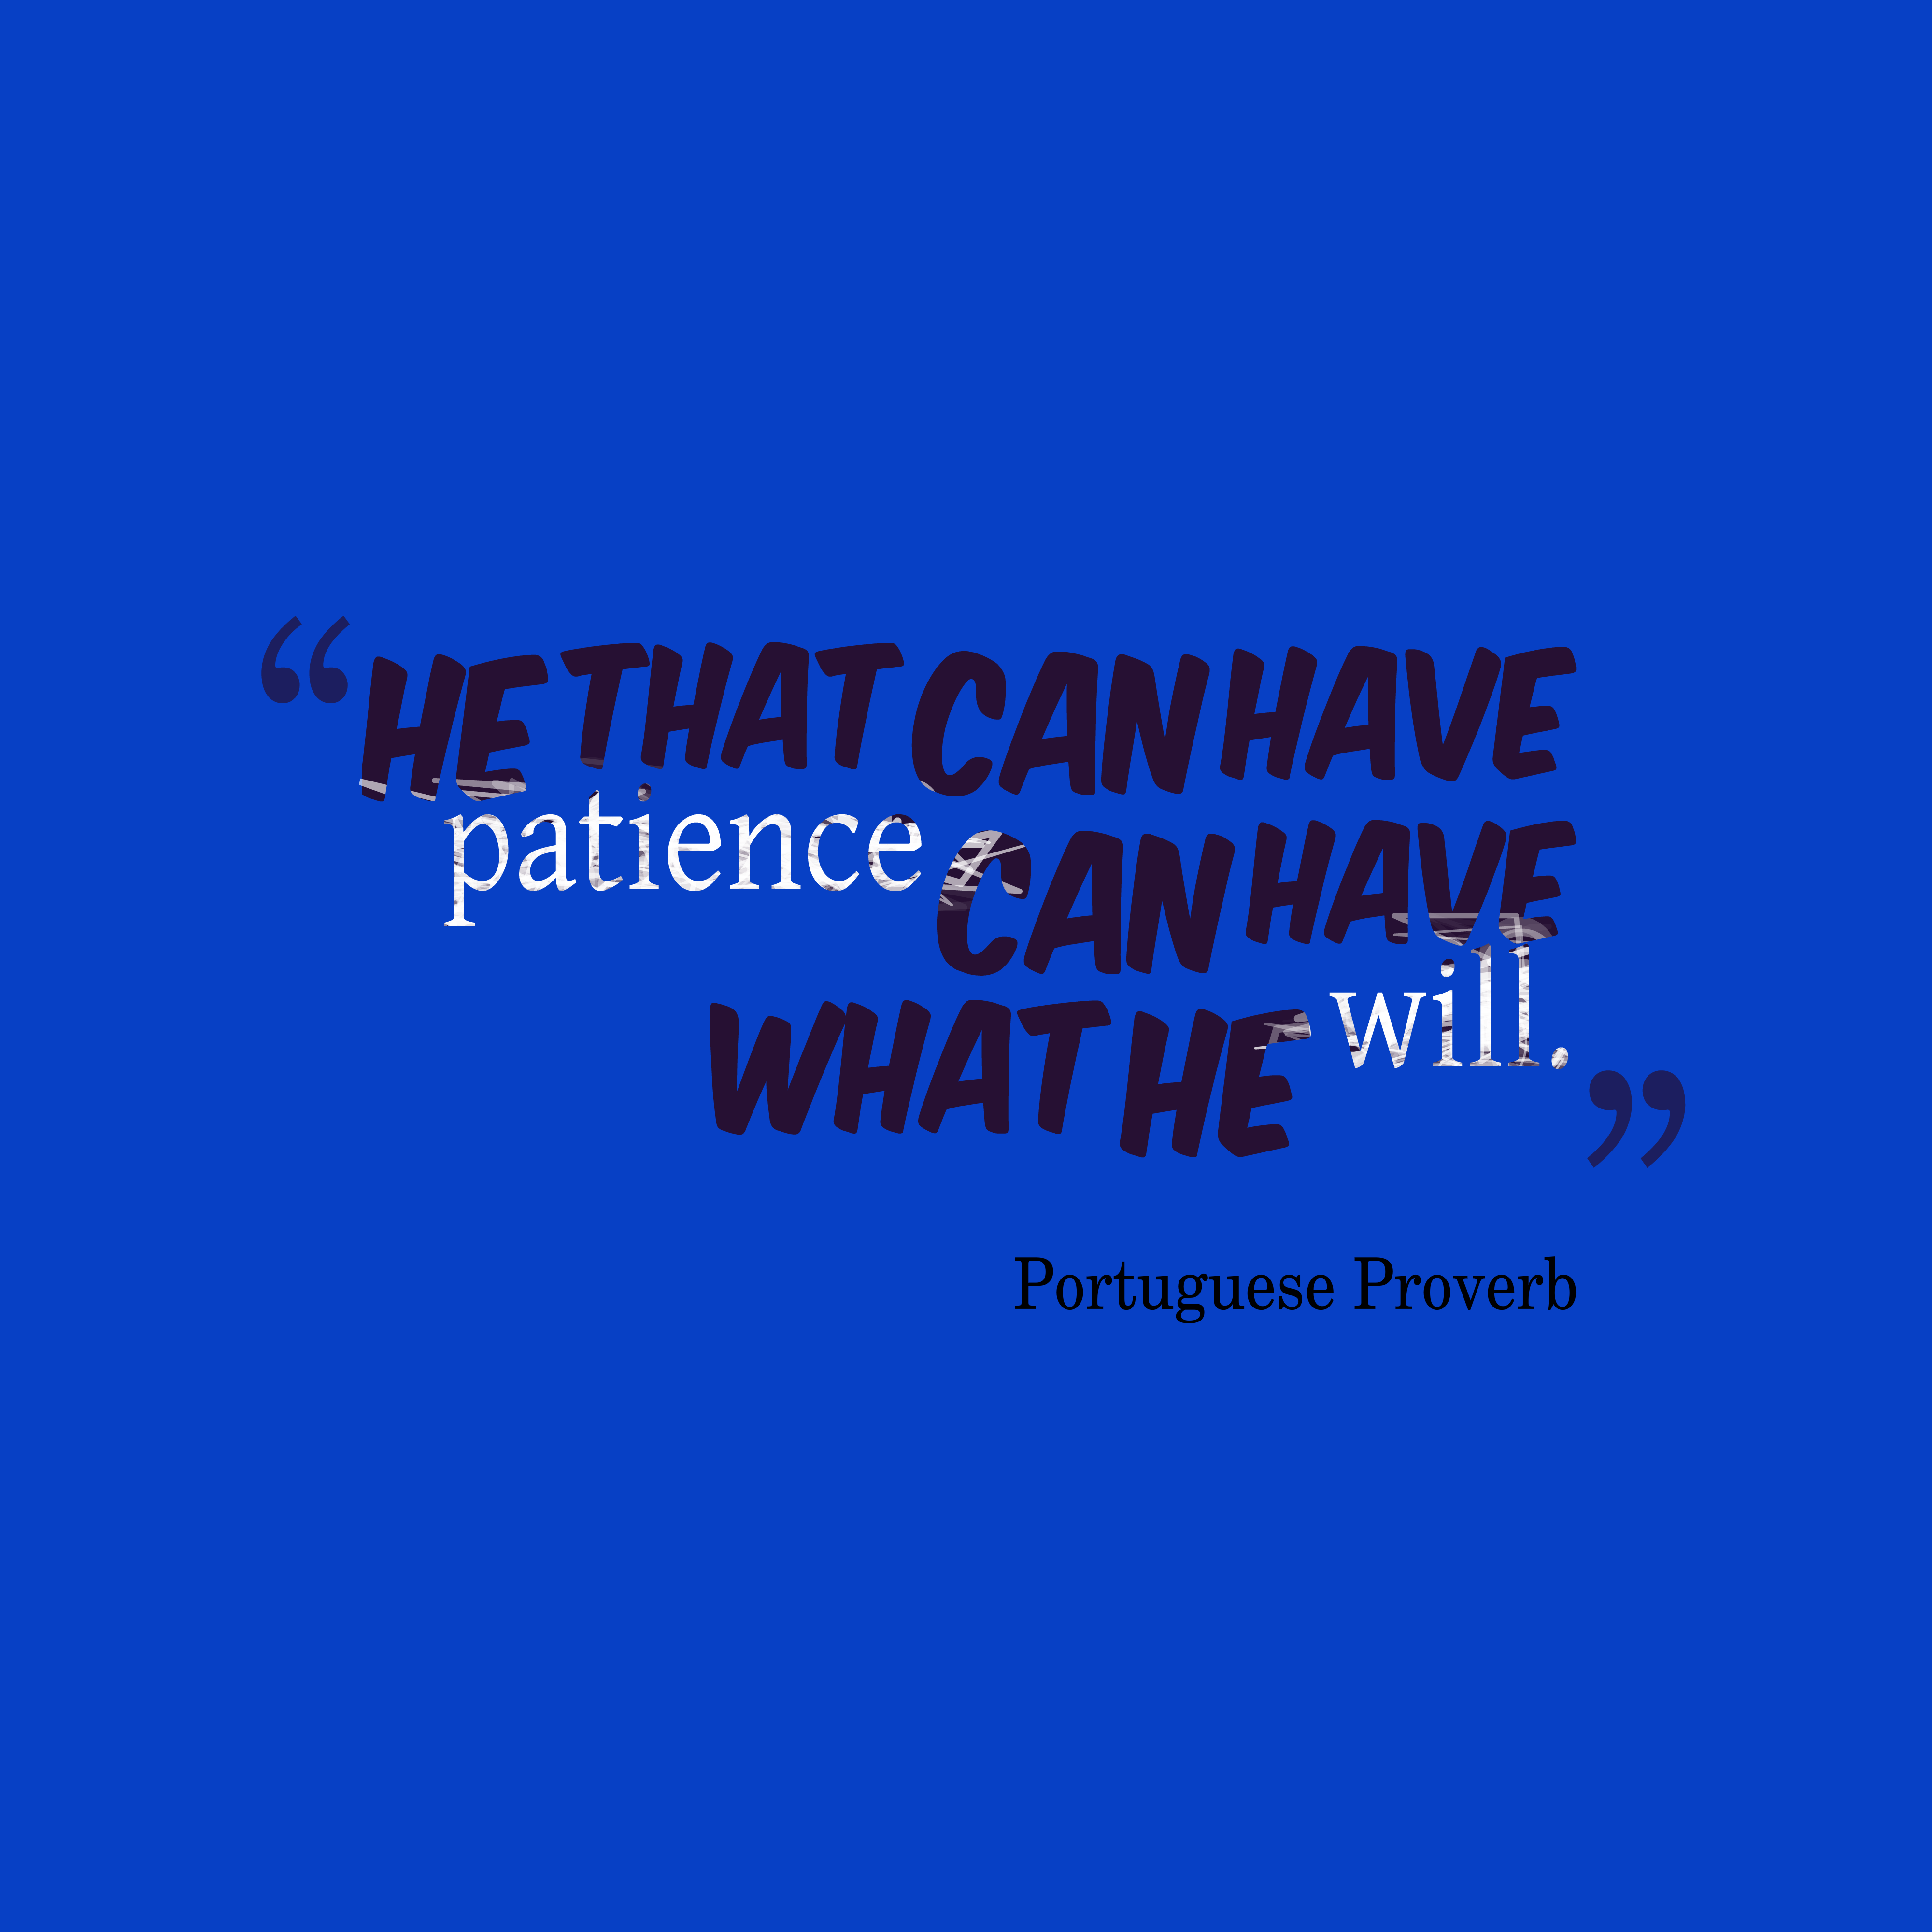 Portuguese Proverb About Patience